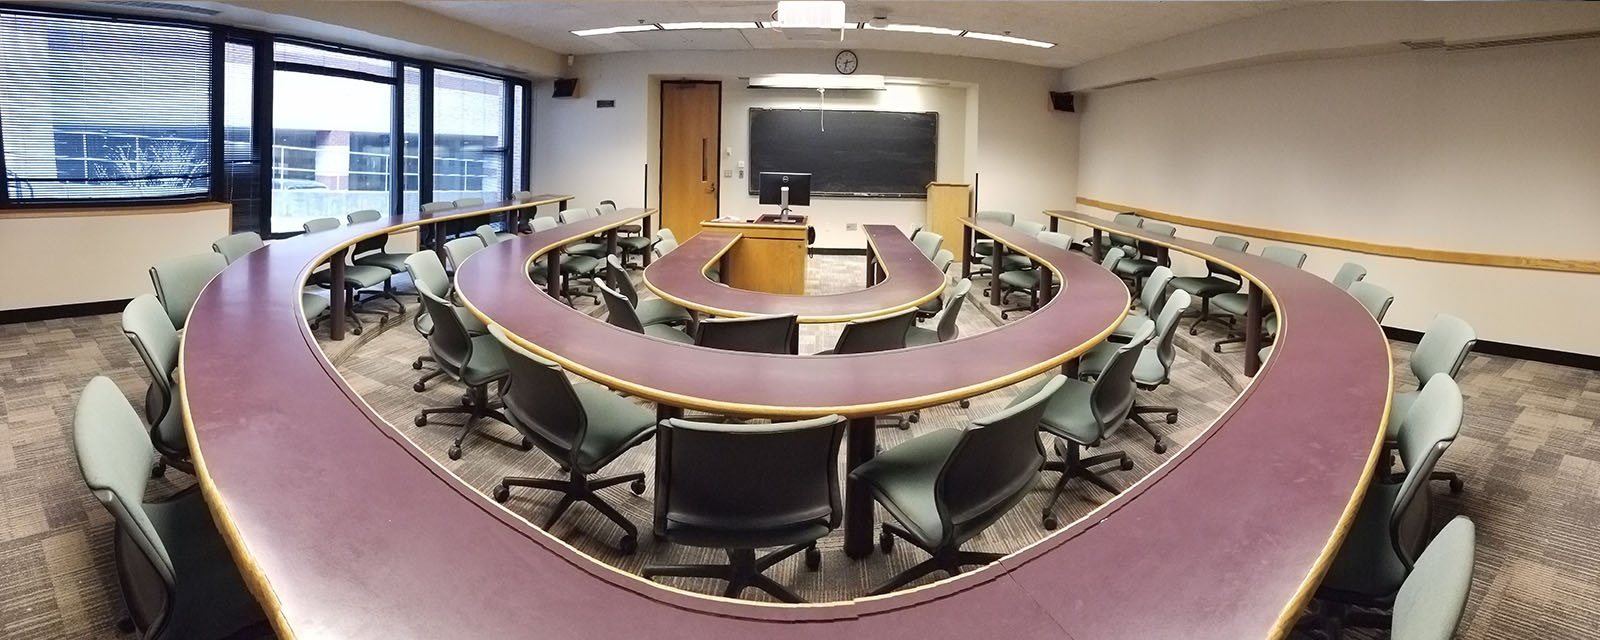 panorama of crouse hinds 001 from rear of room, chairs moveable with stationary tables, teaching station front and center